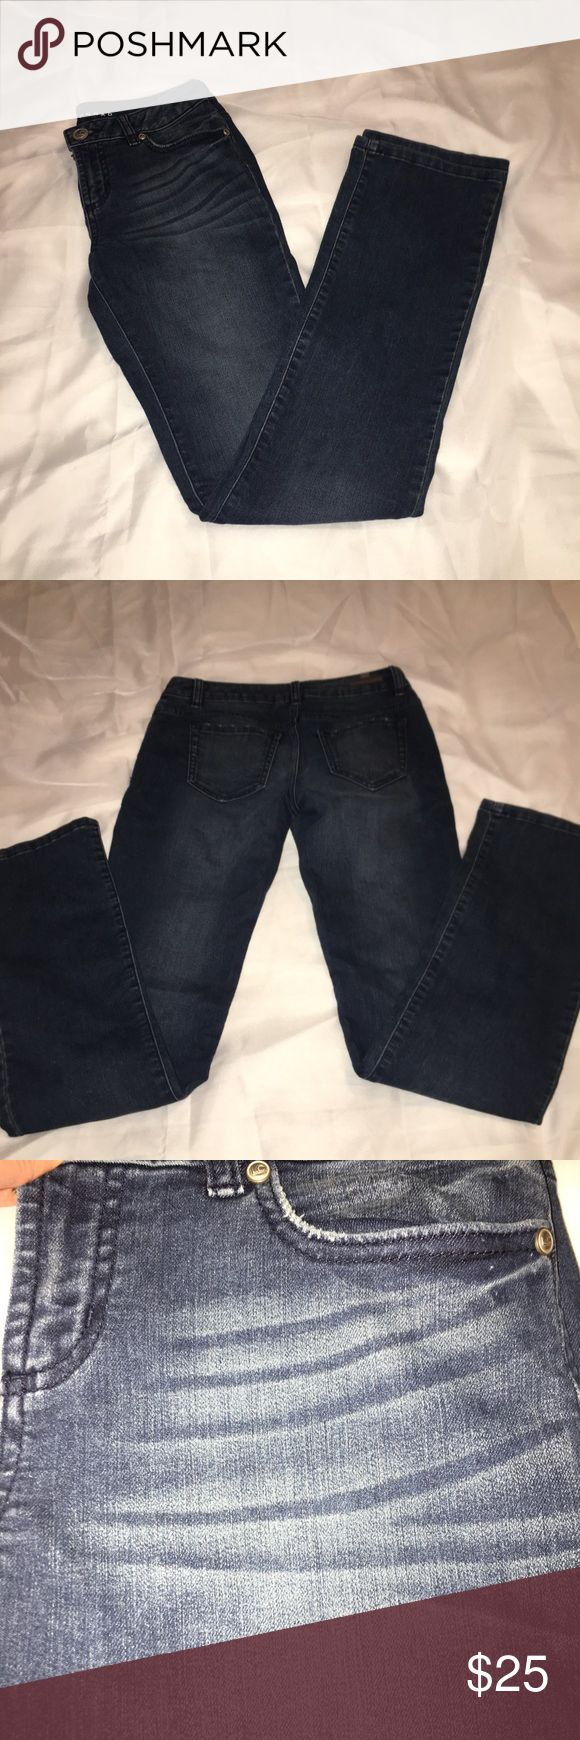 Laura Conrad Straight Dark Wash Jeans w/ distress These LC jeans are super soft and comfortable. The inseam is approximately 32 inches. These are in EUC. They have distressing on the front and the back pockets. Barely worn jeans!! LC Lauren Conrad Jeans Straight Leg